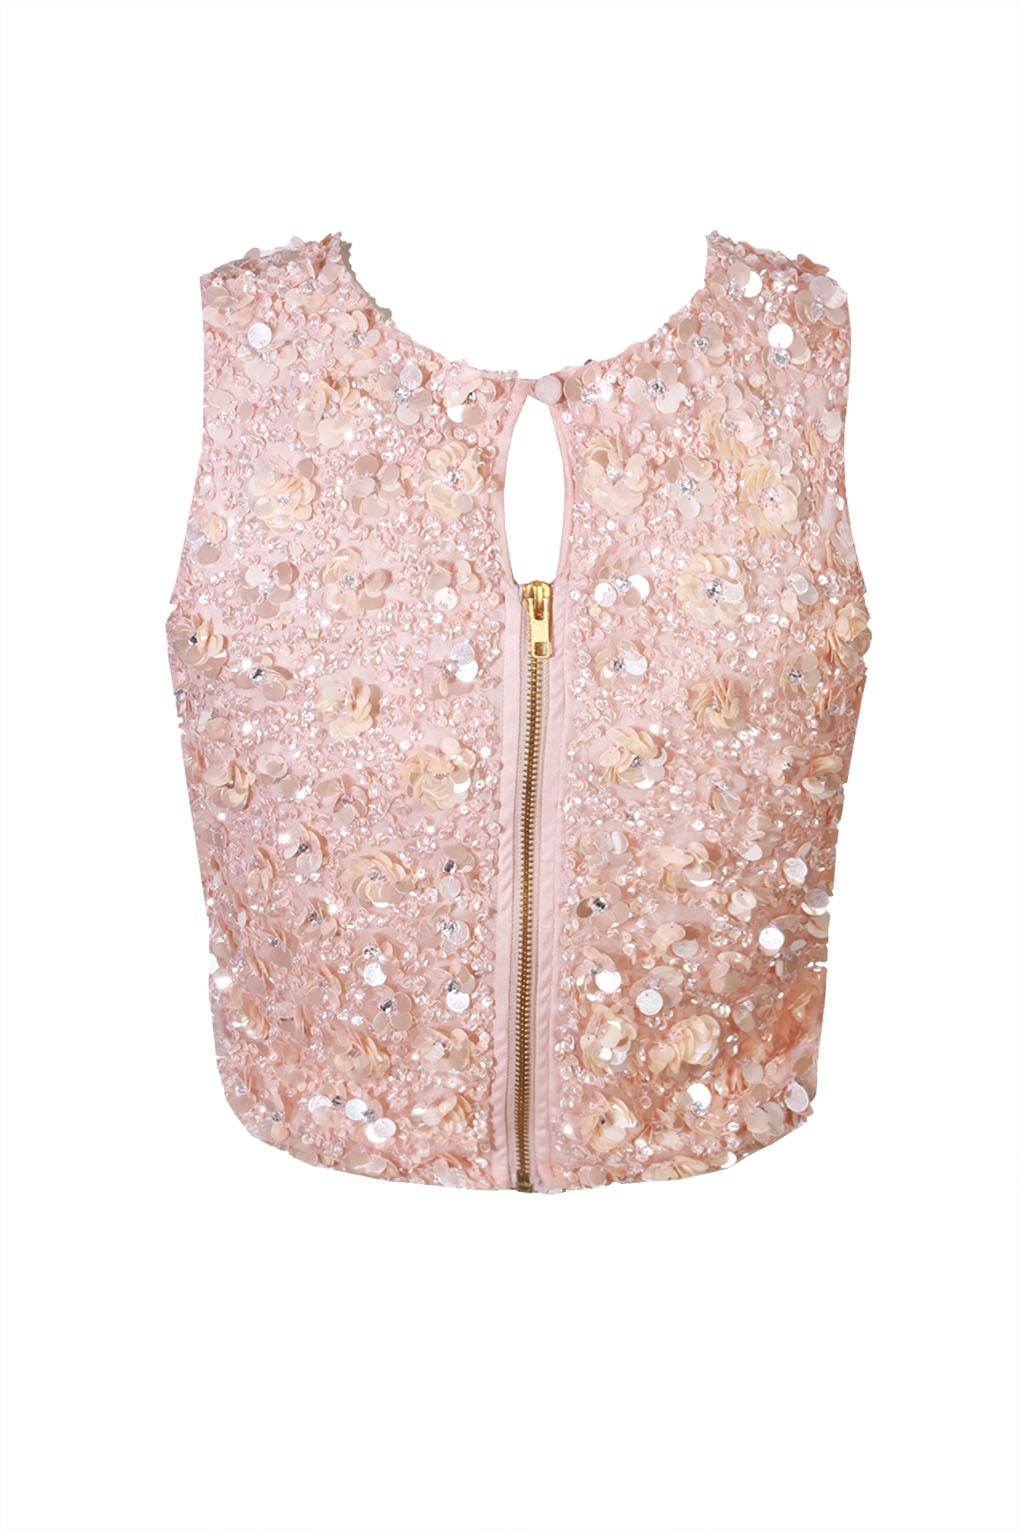 LACE&BEADS HAZEL PINK SEQUIN TOP | LACE&BEADS TOPS